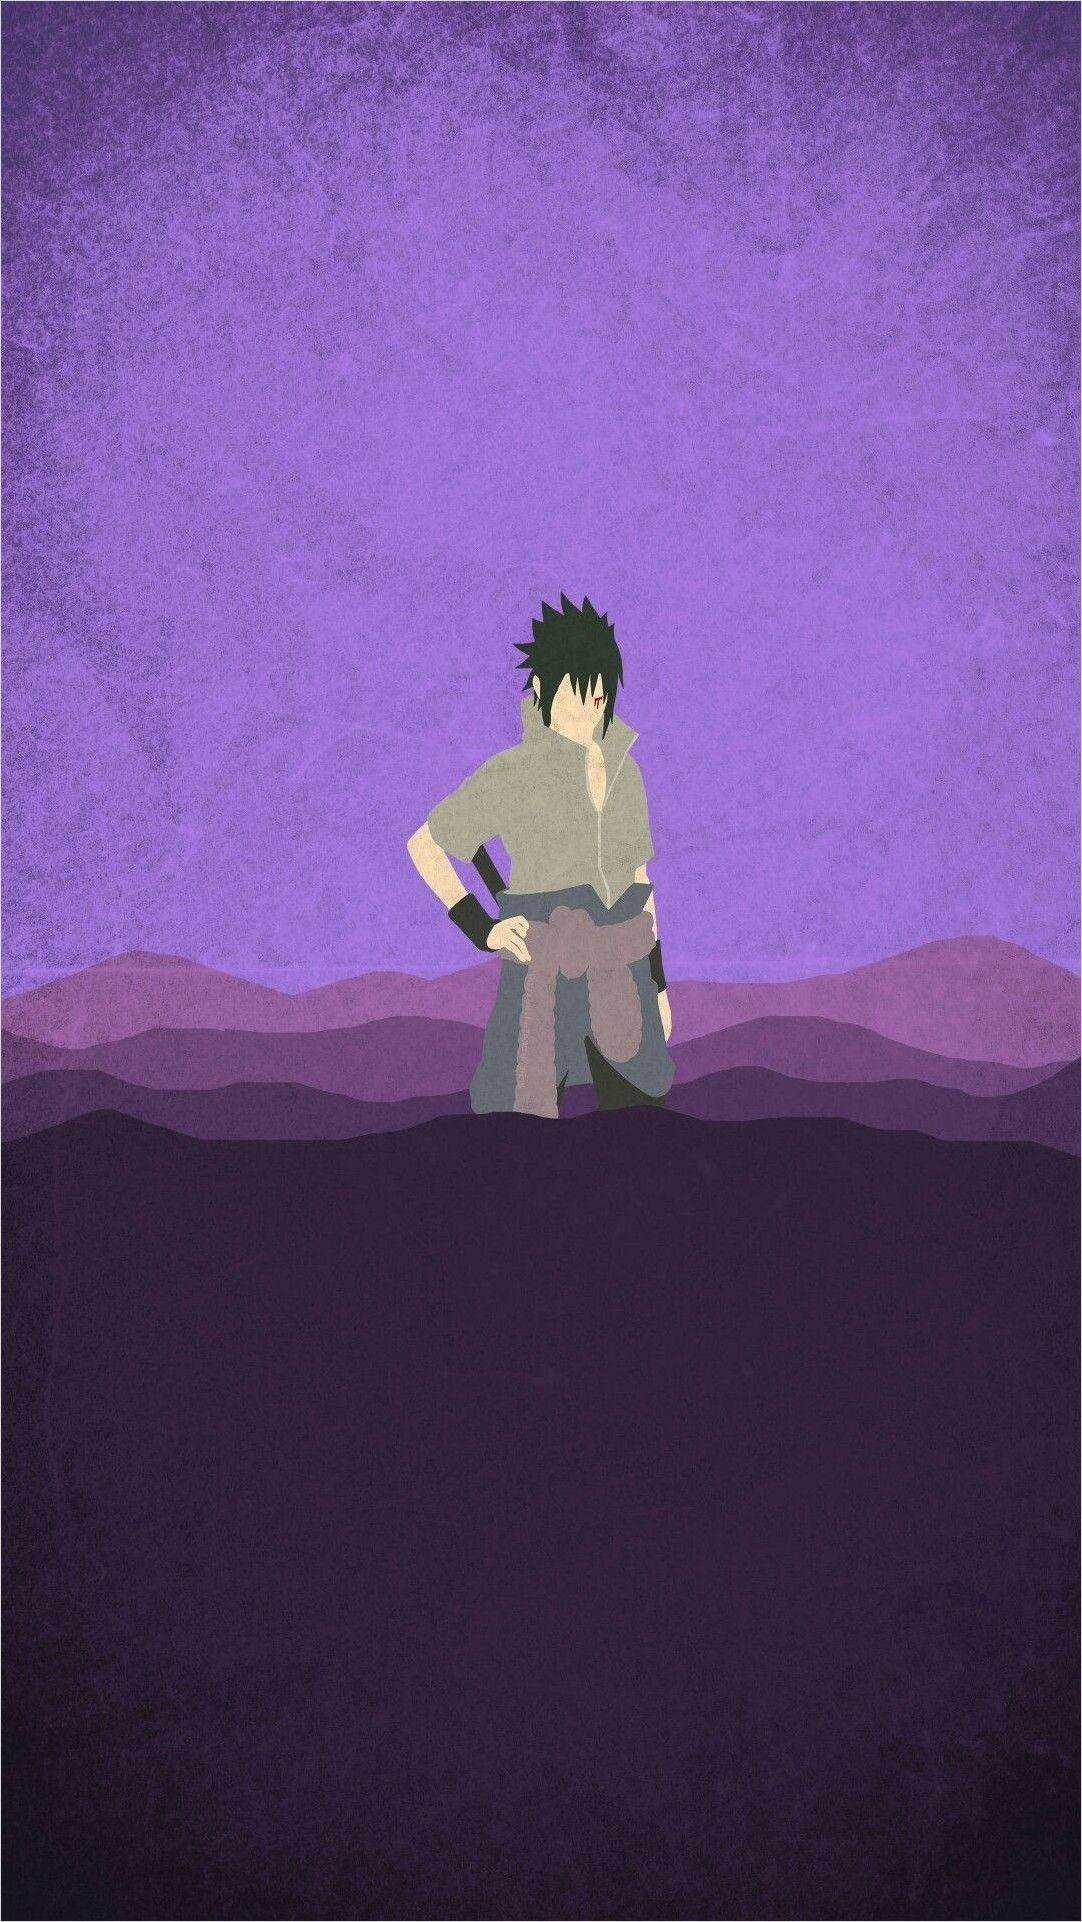 4k Naruto Wallpaper For Mobile In 2020 With Images Naruto